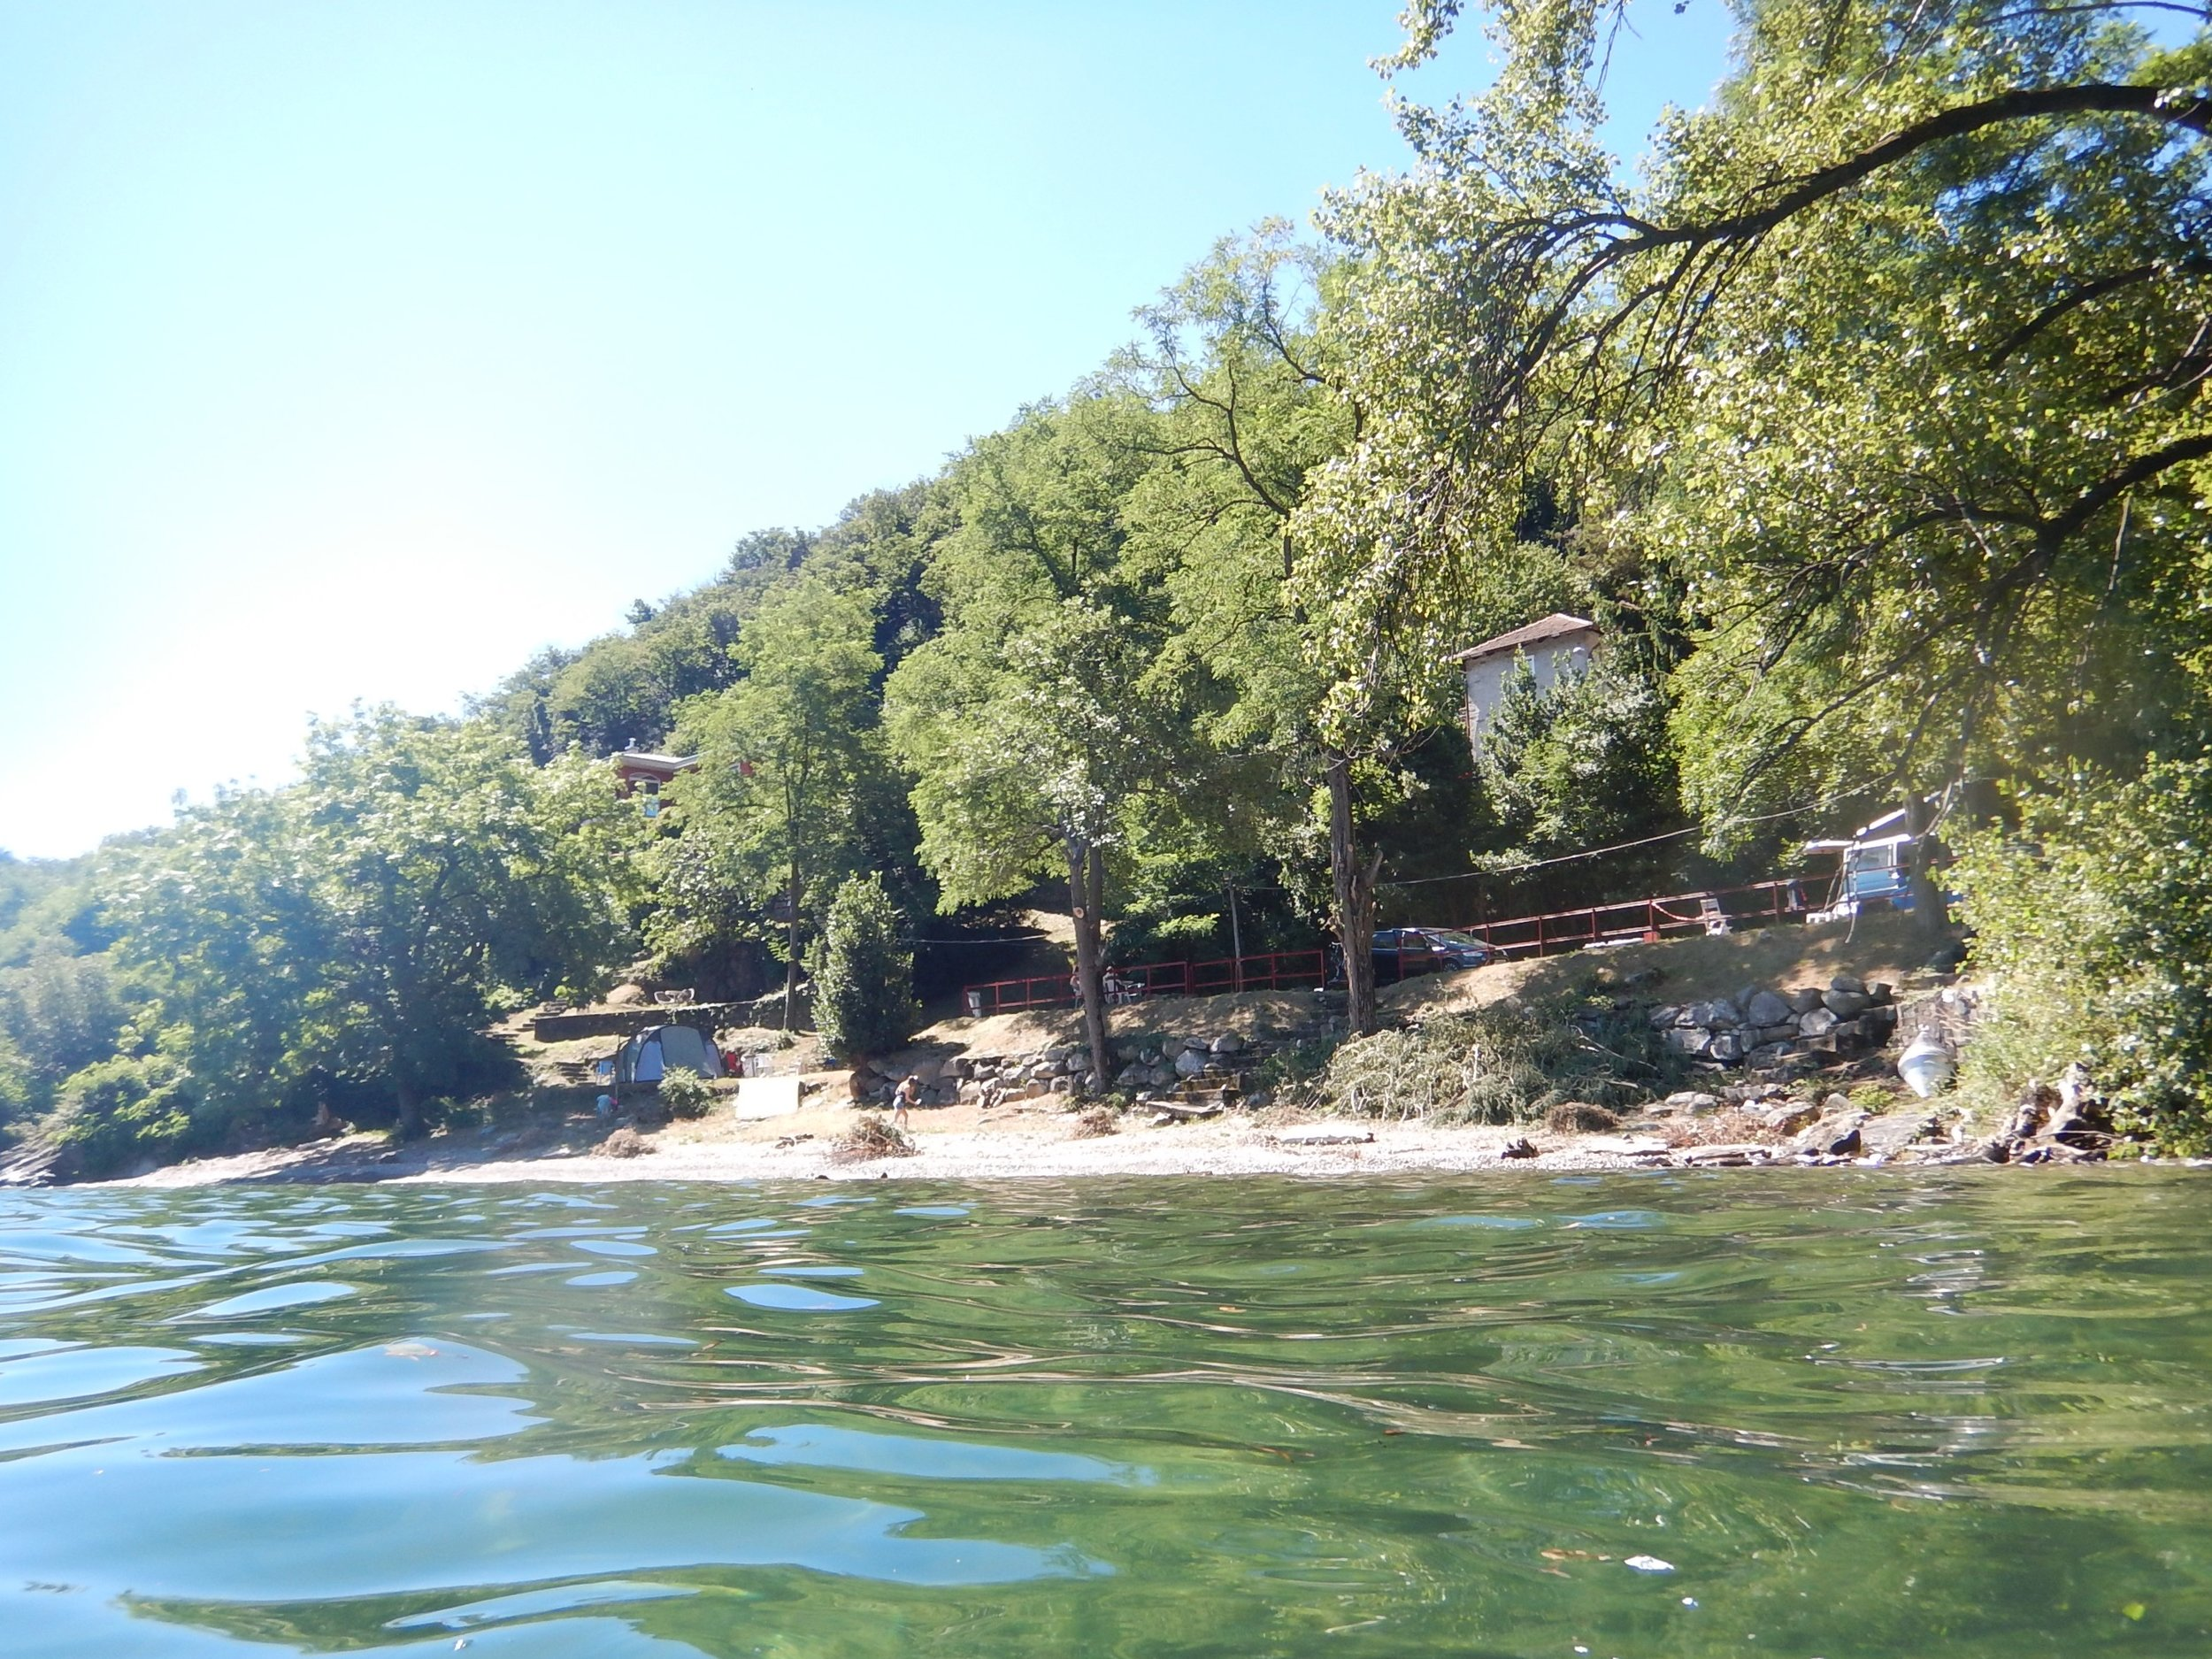 I snorkelled around to the next beach, used for camping. All set up with toilets, community kitchen and laundry.